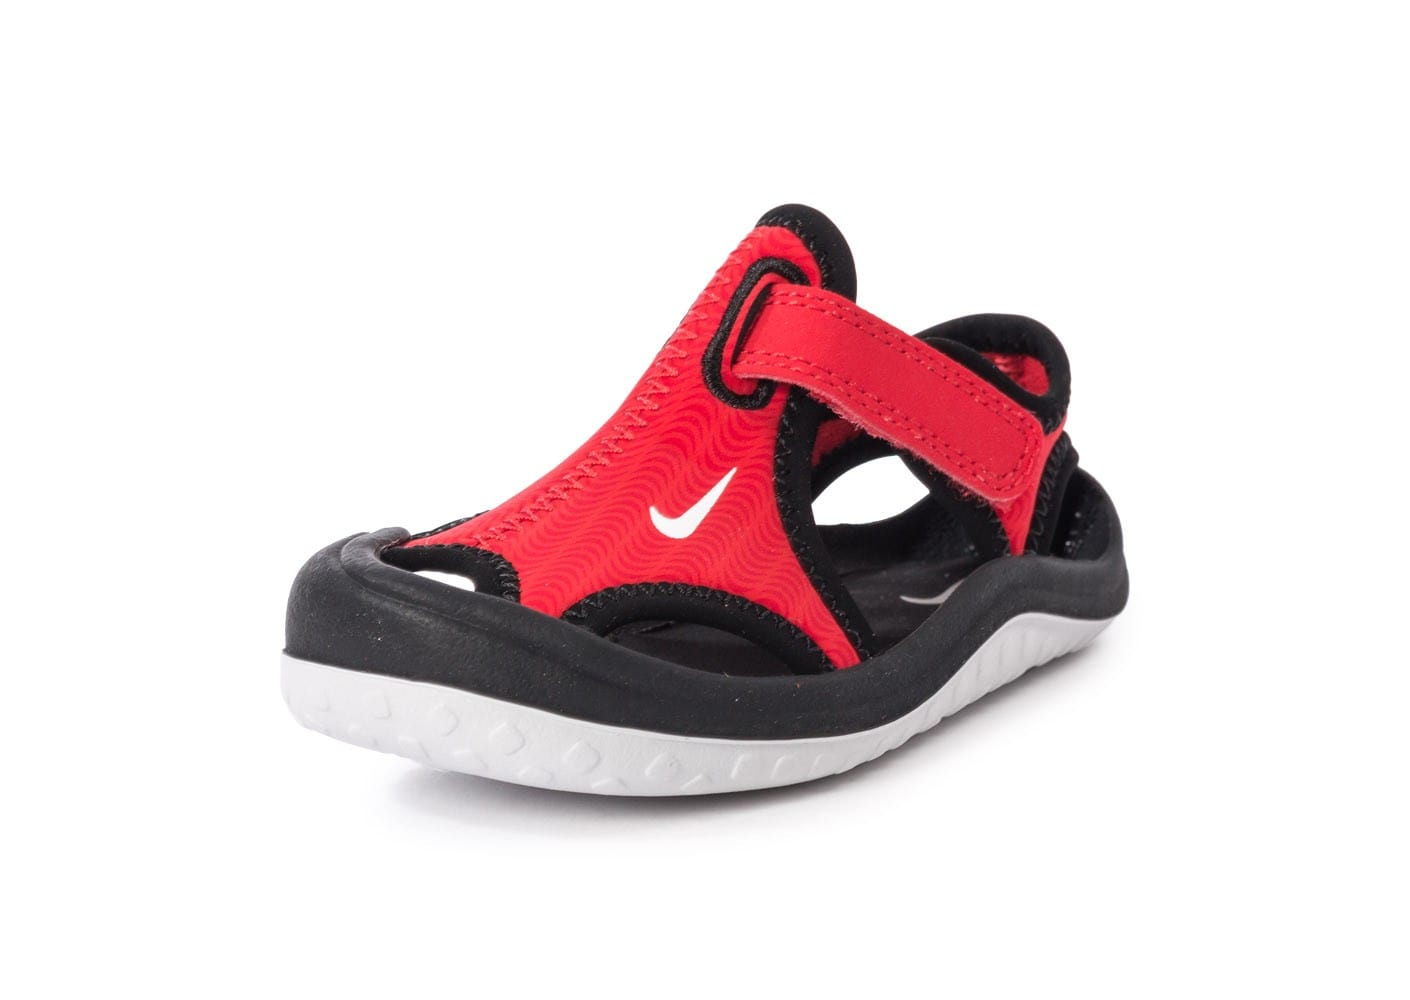 459c4a32fc0 ... chaussures nike sunray protect bebe rouge vue avant